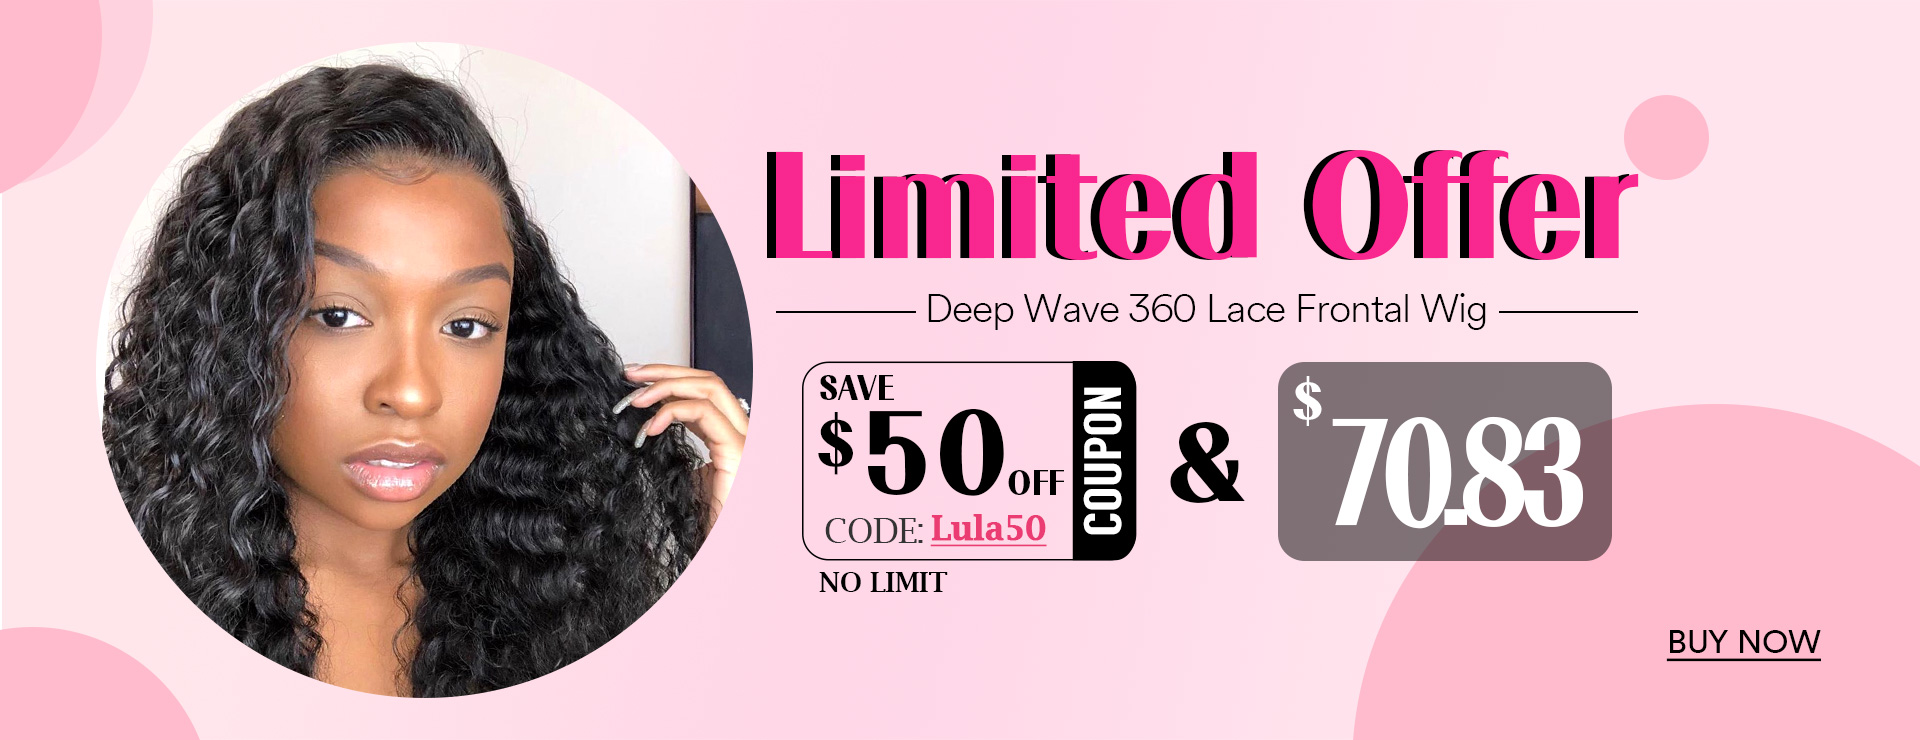 Deep Wave 360 Lace Frontal Wig